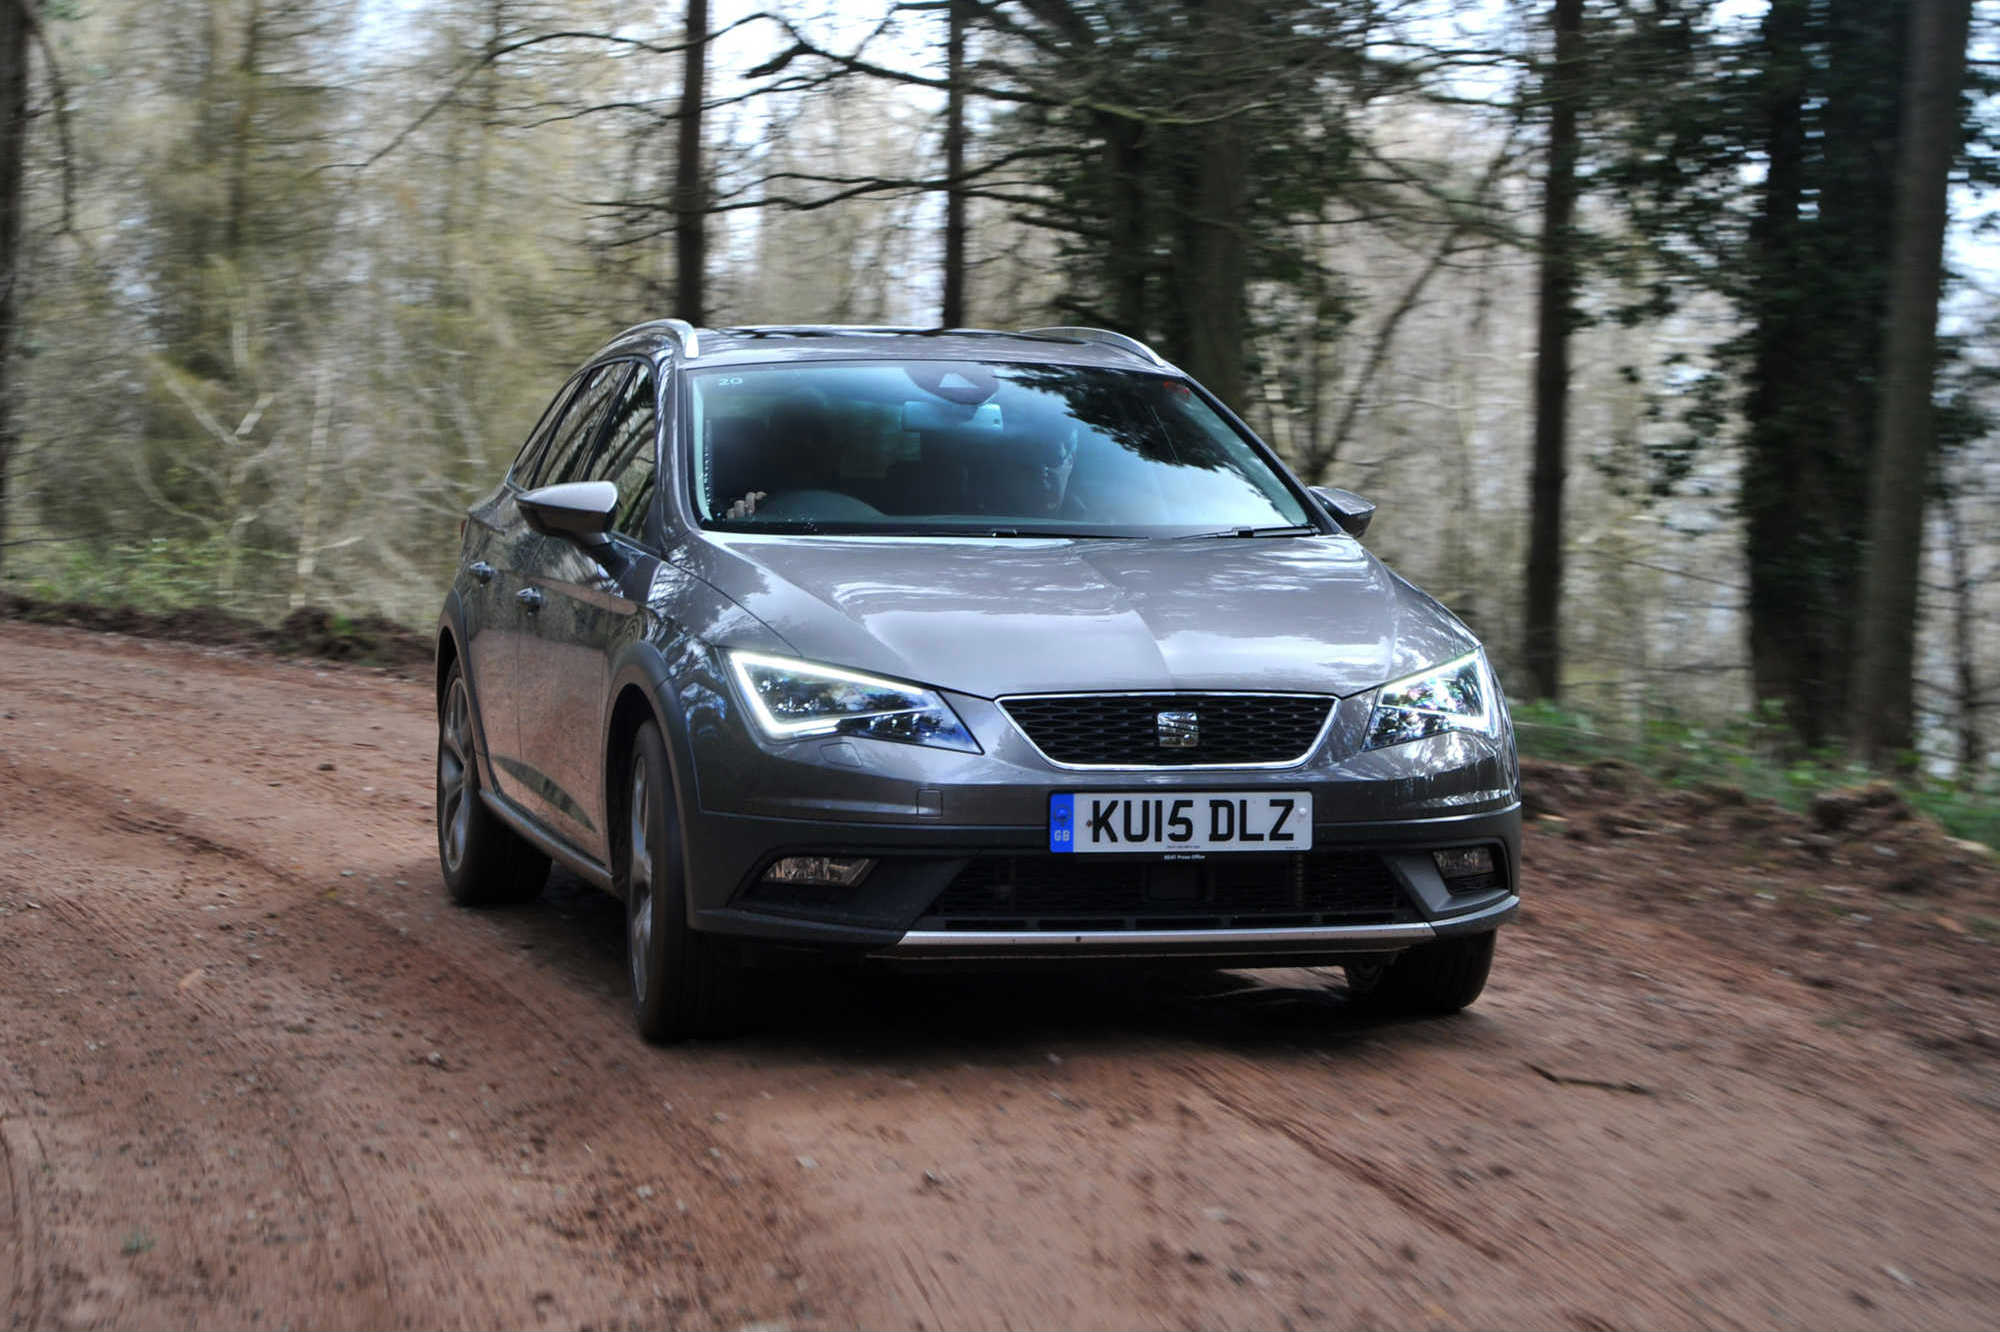 seat leon x perience 2 0 tdi se technology launch report car keys. Black Bedroom Furniture Sets. Home Design Ideas